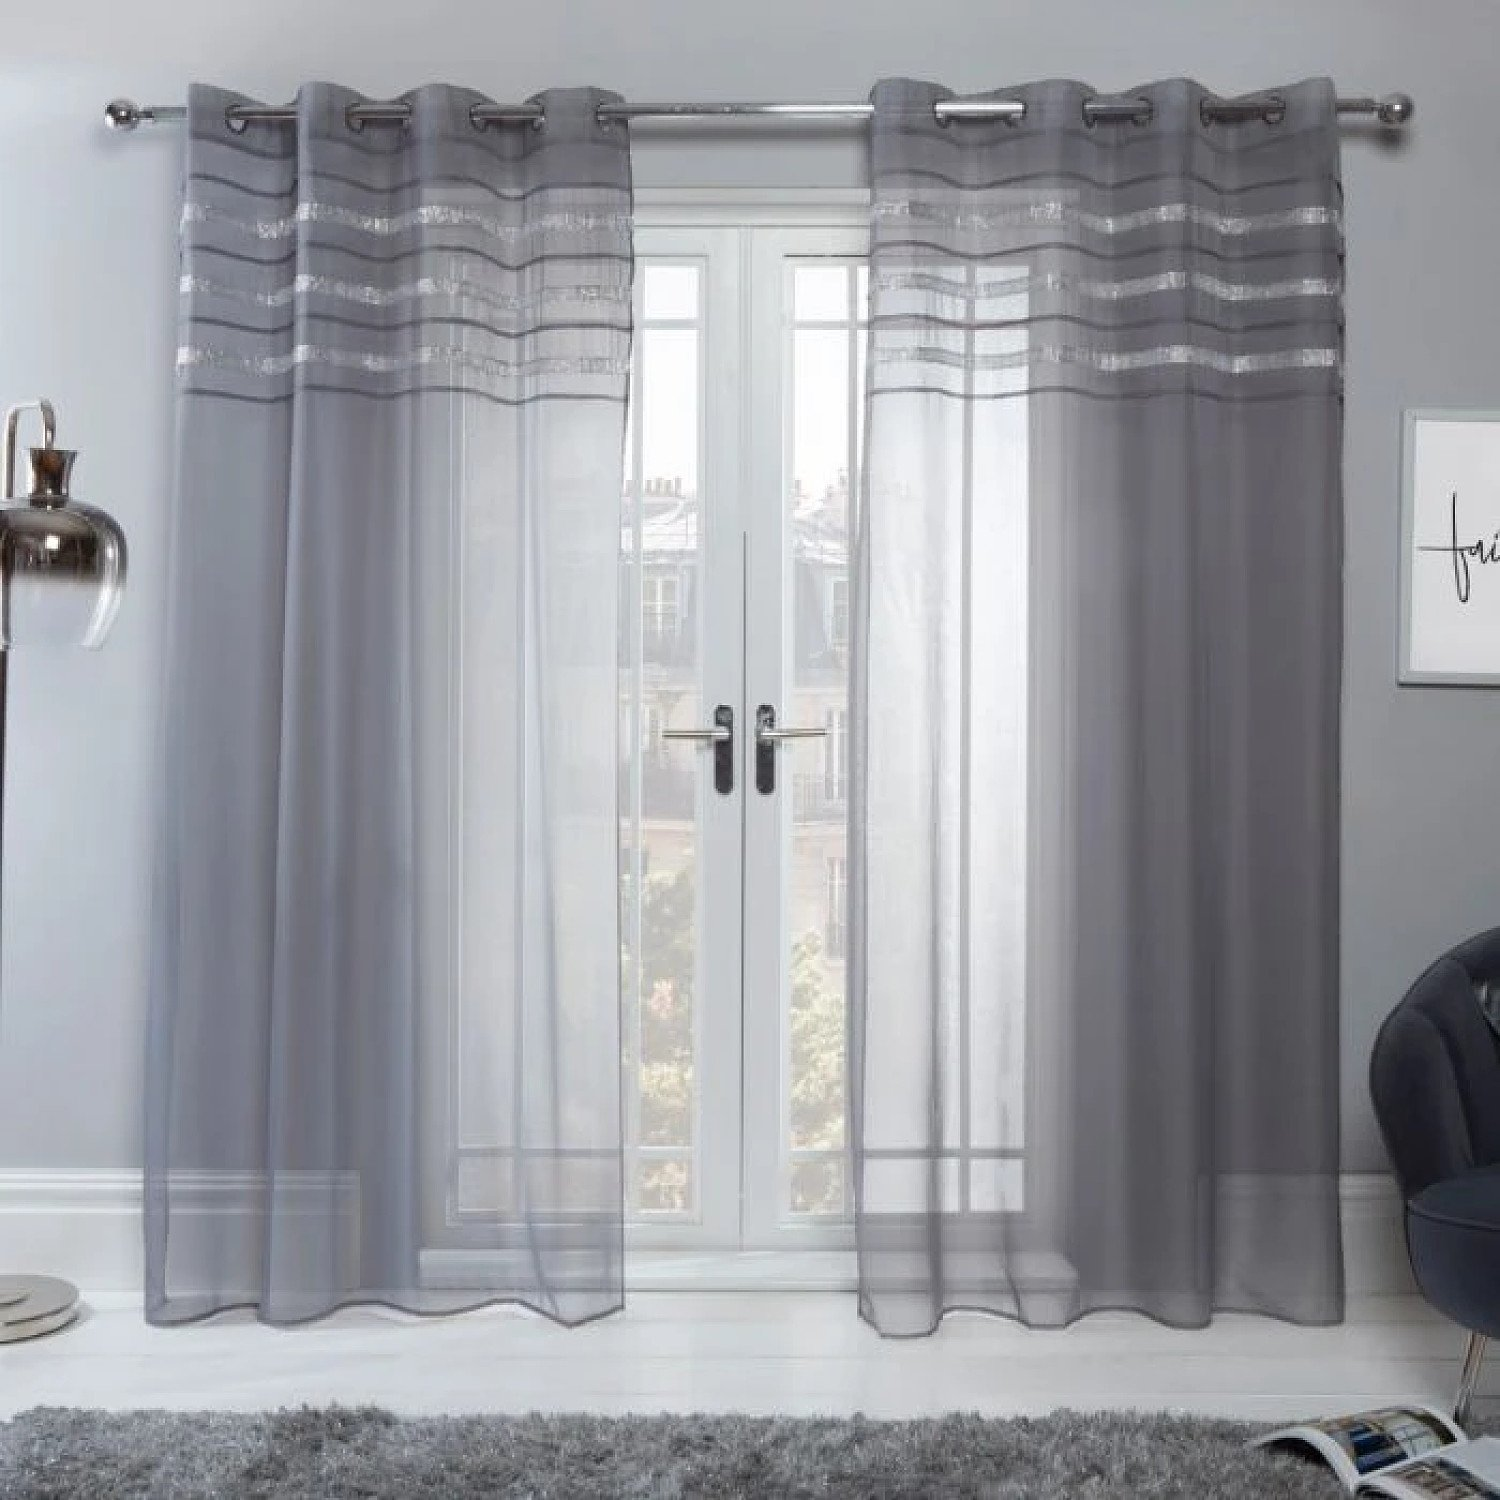 "SIENNA LATINA DIAMANTE VOILE NET CURTAINS EYELET, CHARCOAL GREY - 55"" X 87"" Free Postage"